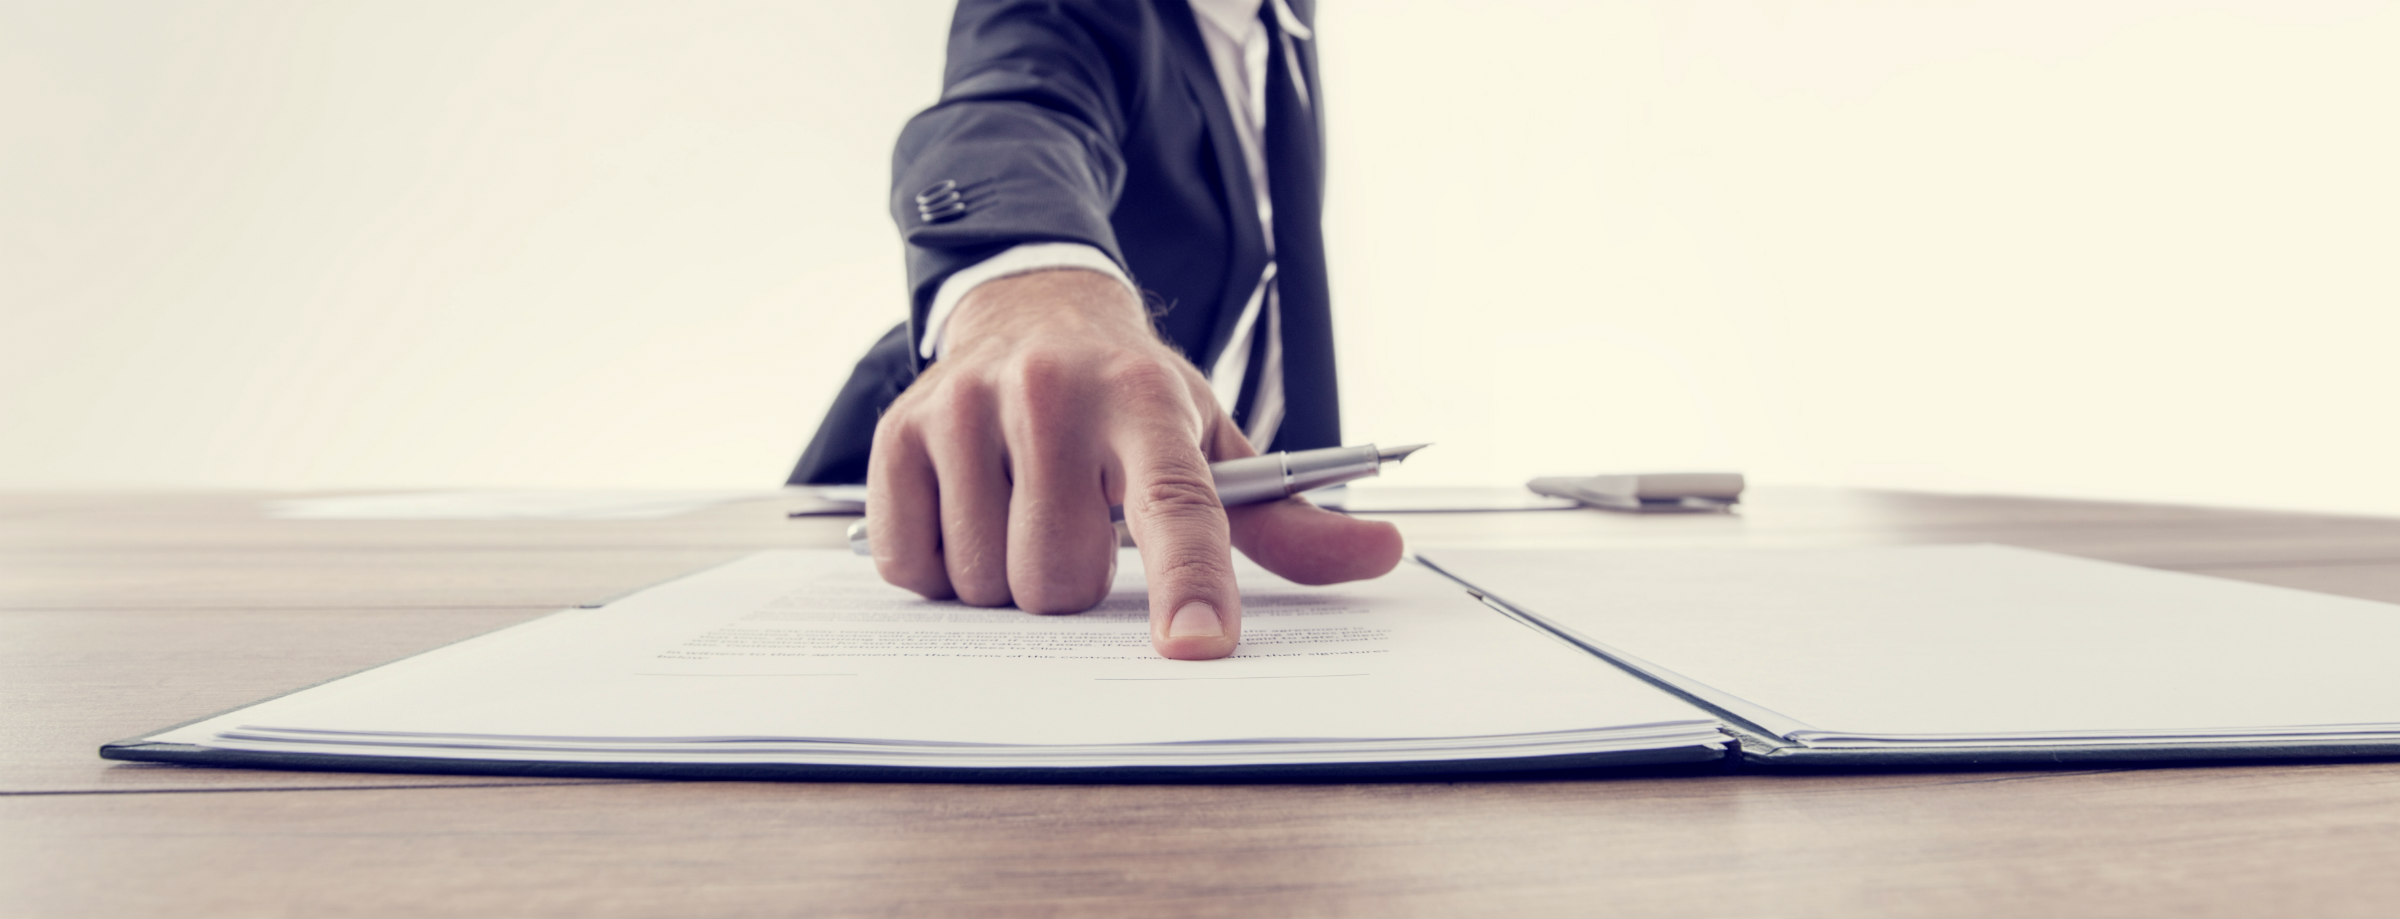 6 fundamental insurance questions small business owners are too polite to ask